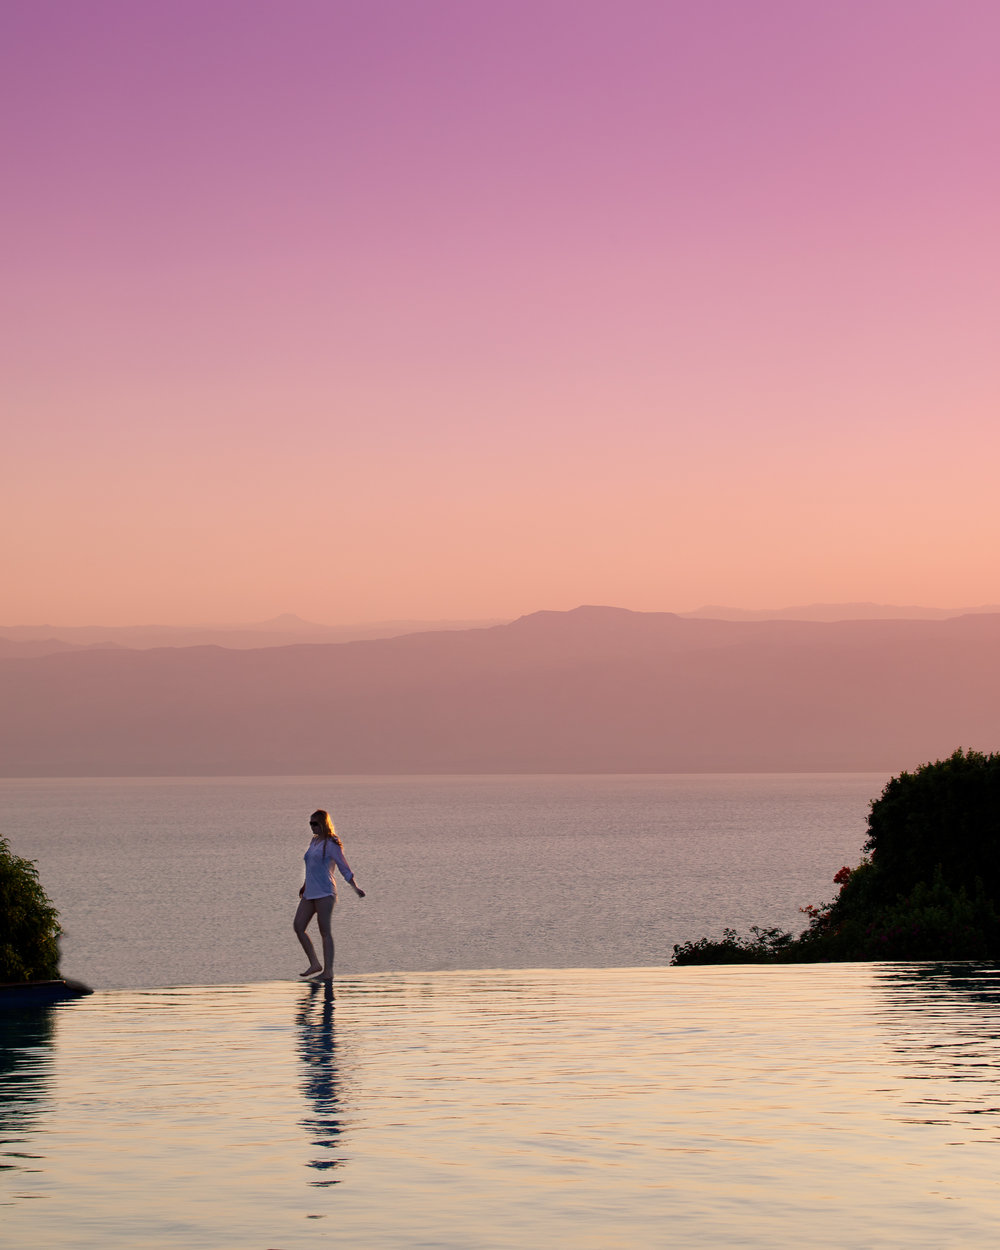 The first of two stunning infinity pools at the Movenpick